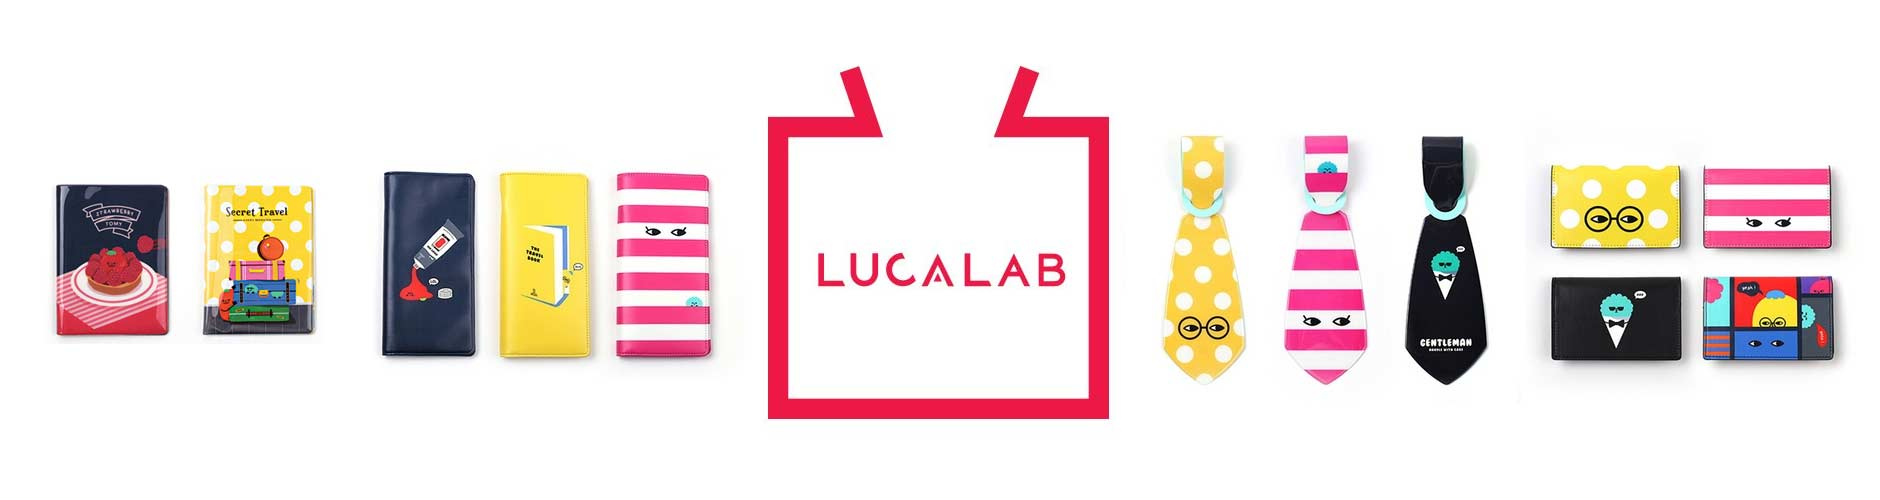 New brand - Lucalab